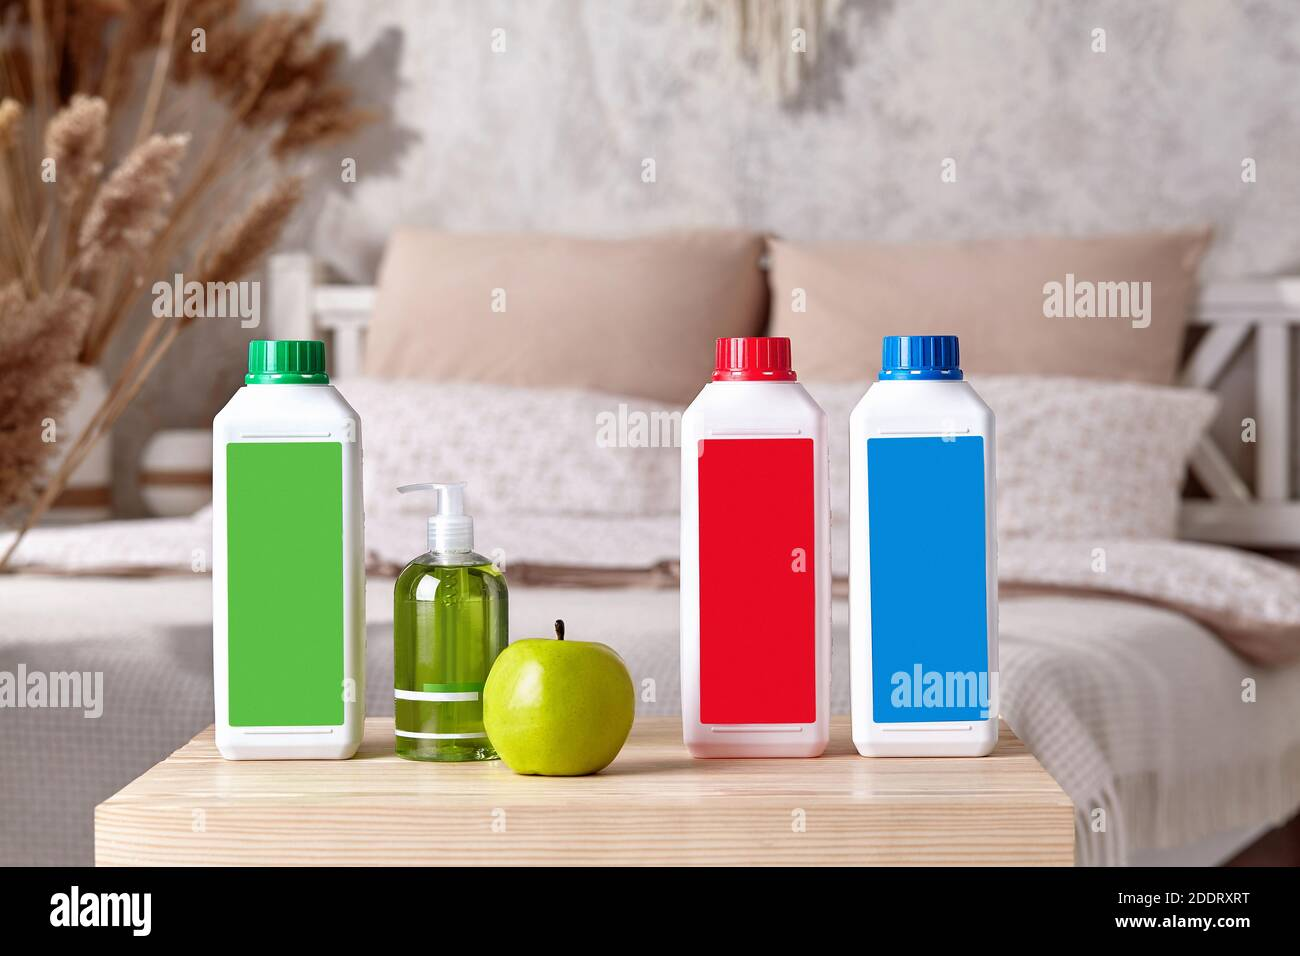 Three colorful plastic containers with detergents, pump bottle with soap and green apple on wooden bedside table in bedroom. Close up, copy space Stock Photo